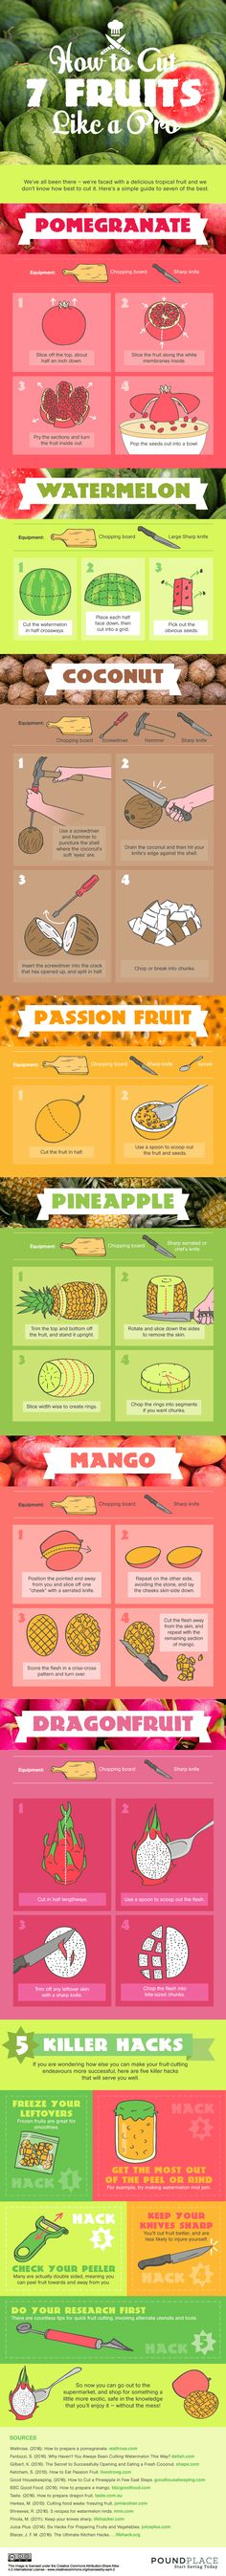 How To Cut 7 Fruits Like a Pro #Infographic #HowTo #Fruits